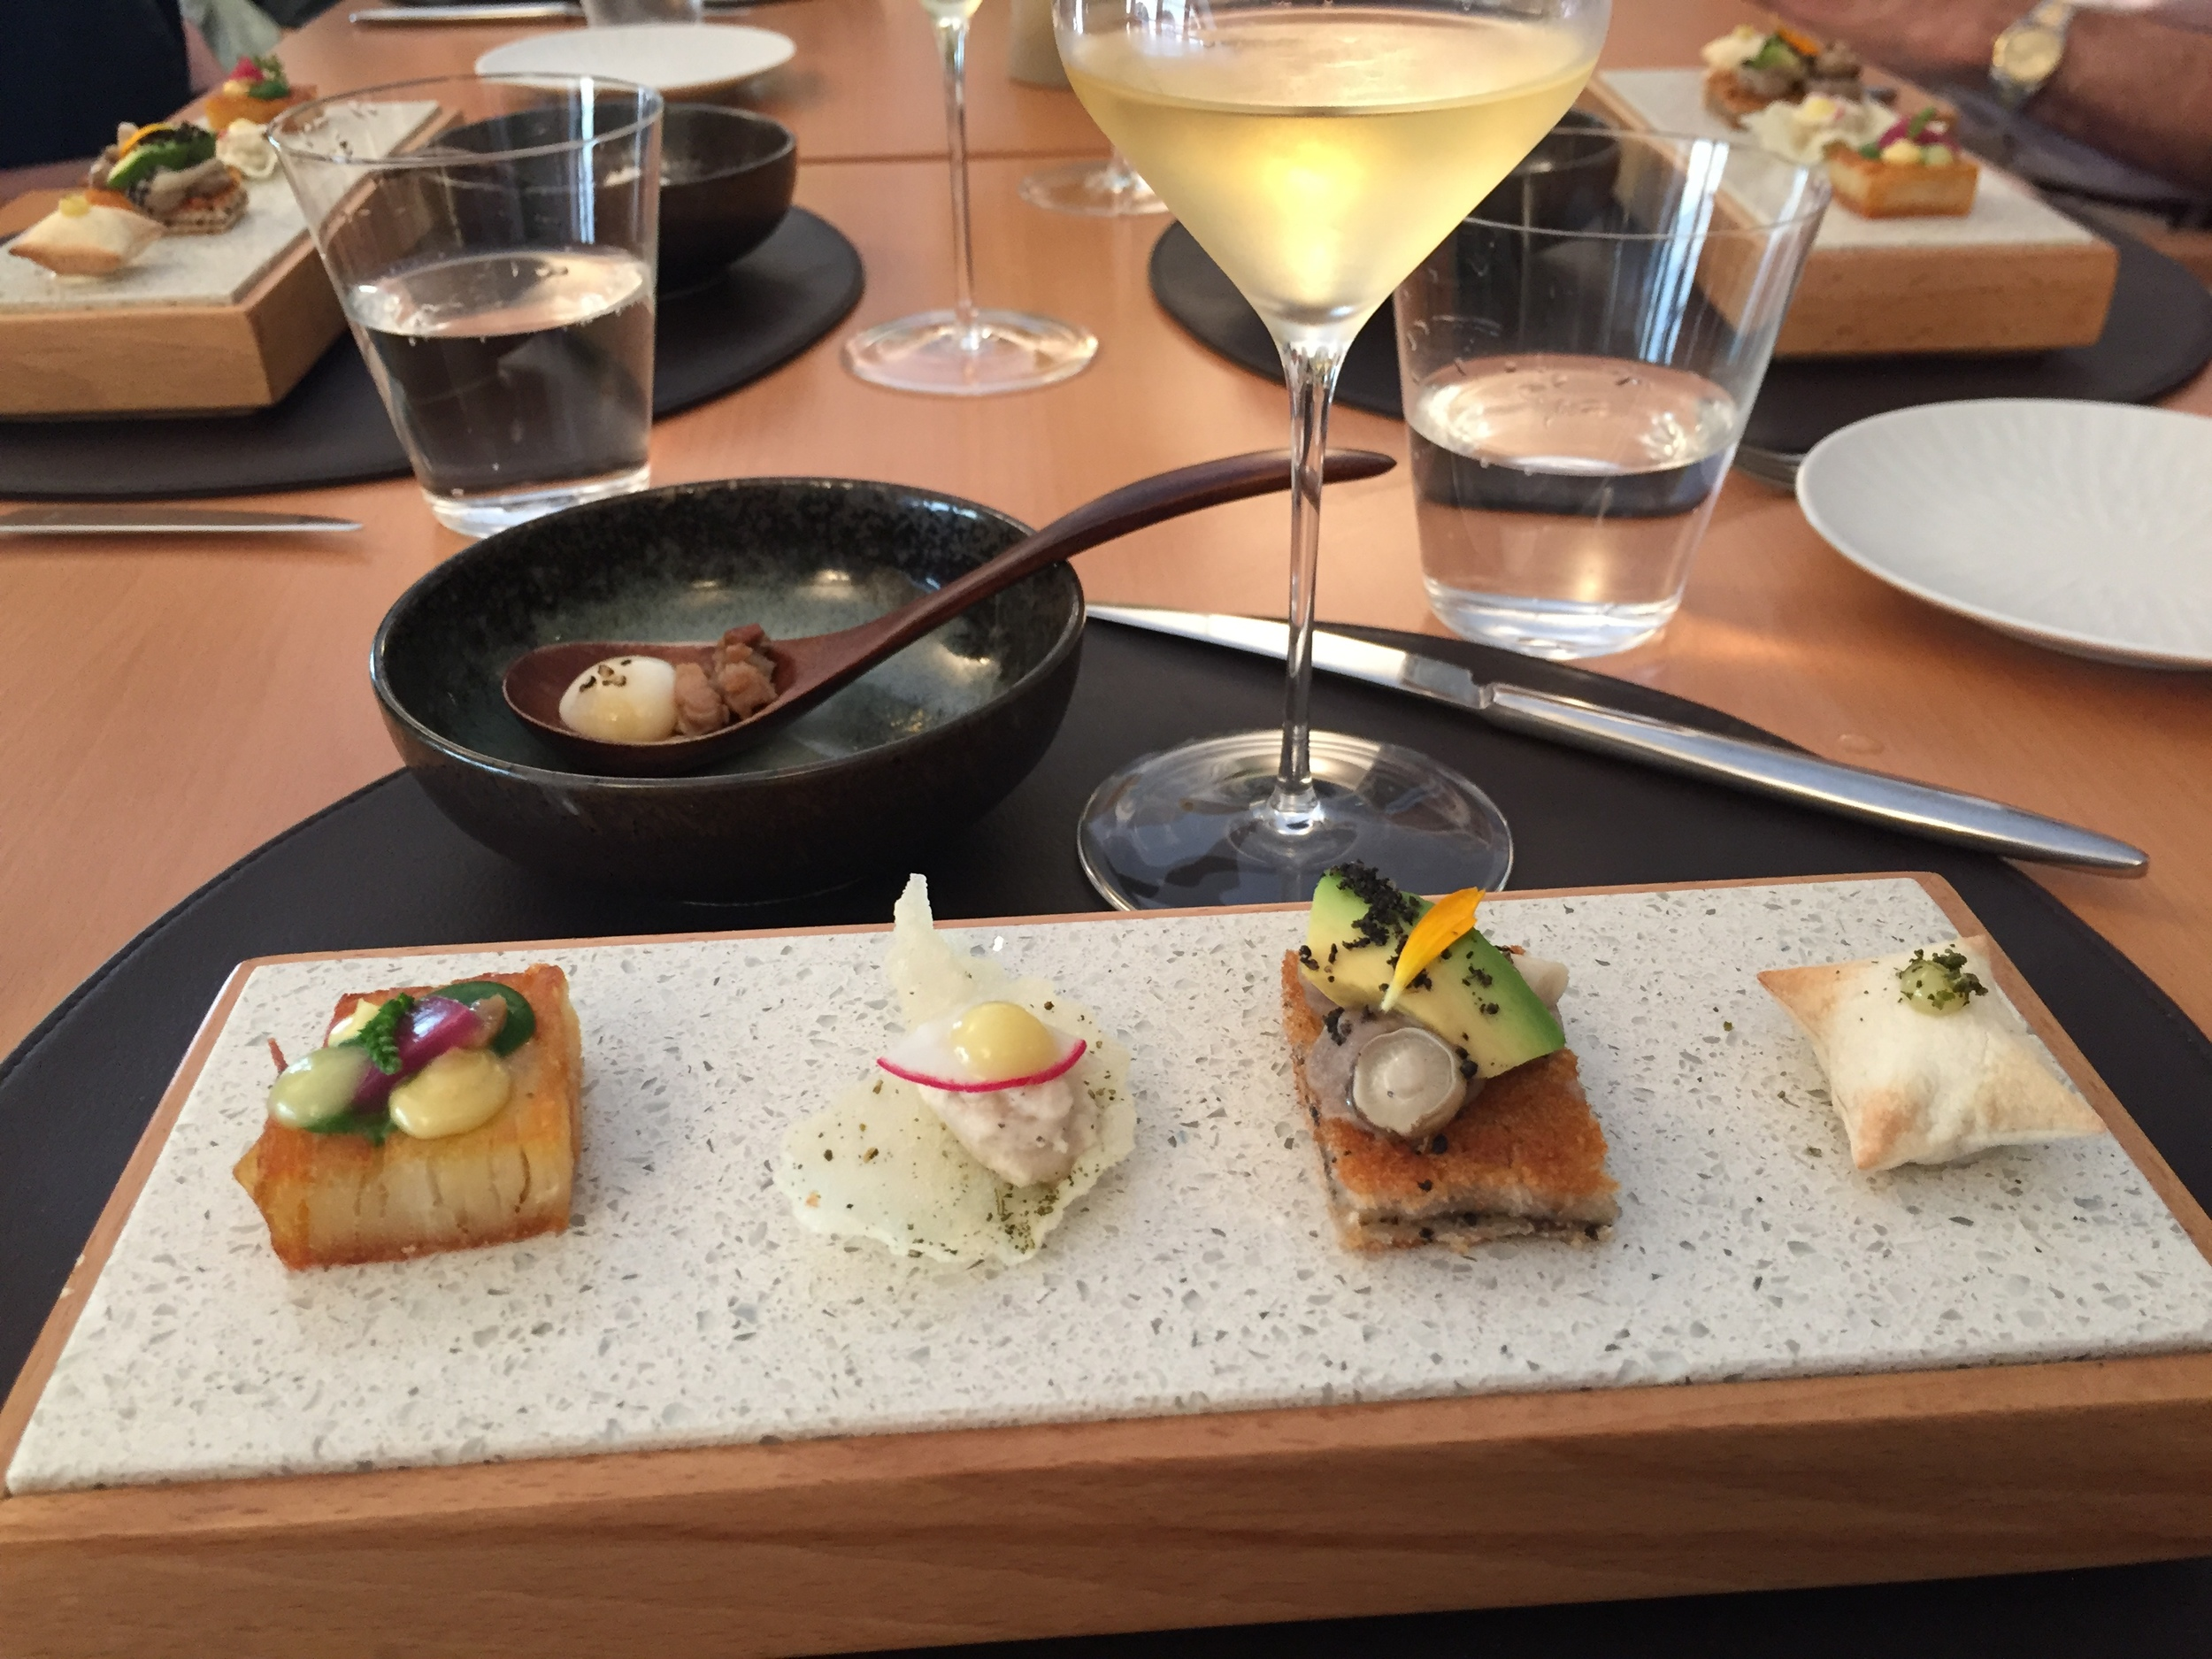 The start to an amazing lunch at  Racine  in Reims